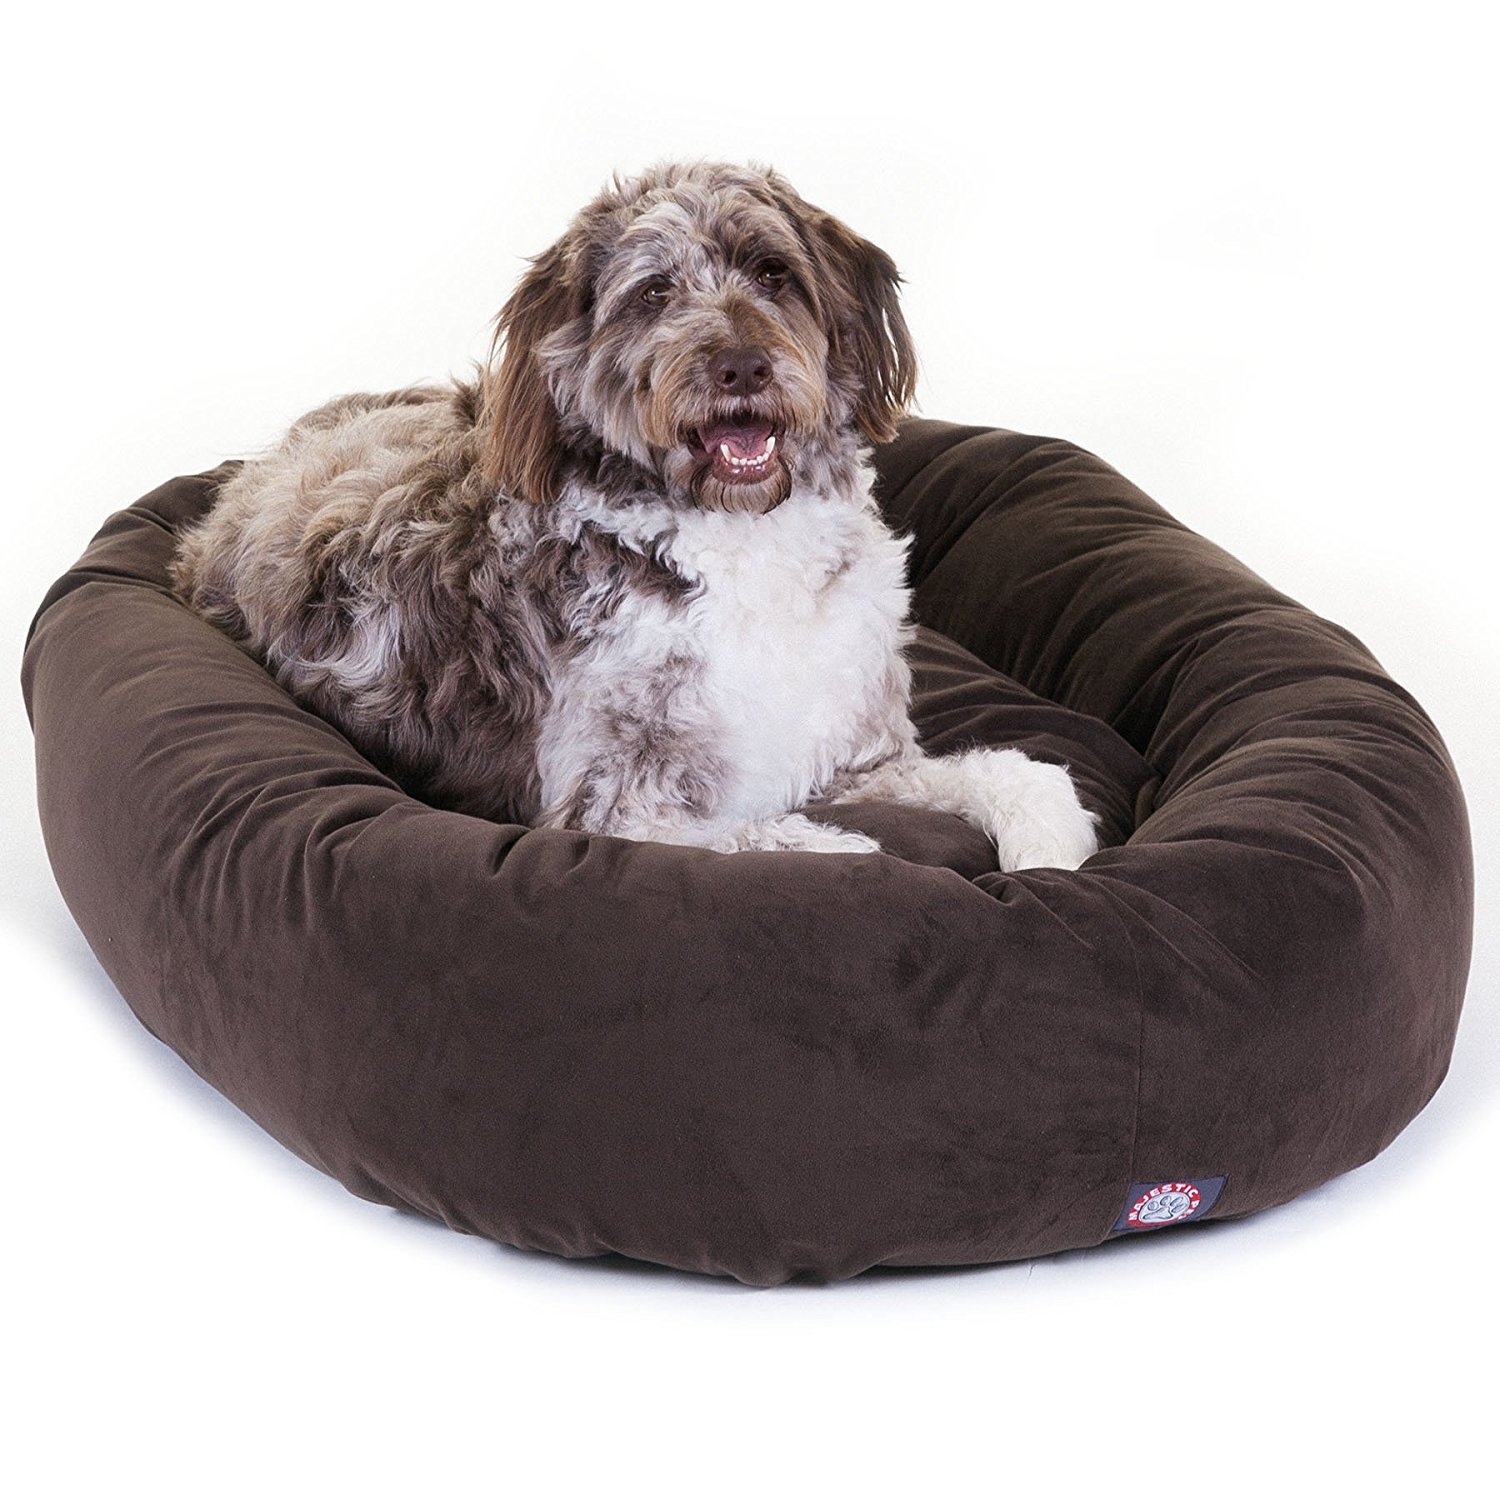 8.-Suede-Dog-Bed-By-Majestic-Pet-Products 10 Best Beds for Large Dogs